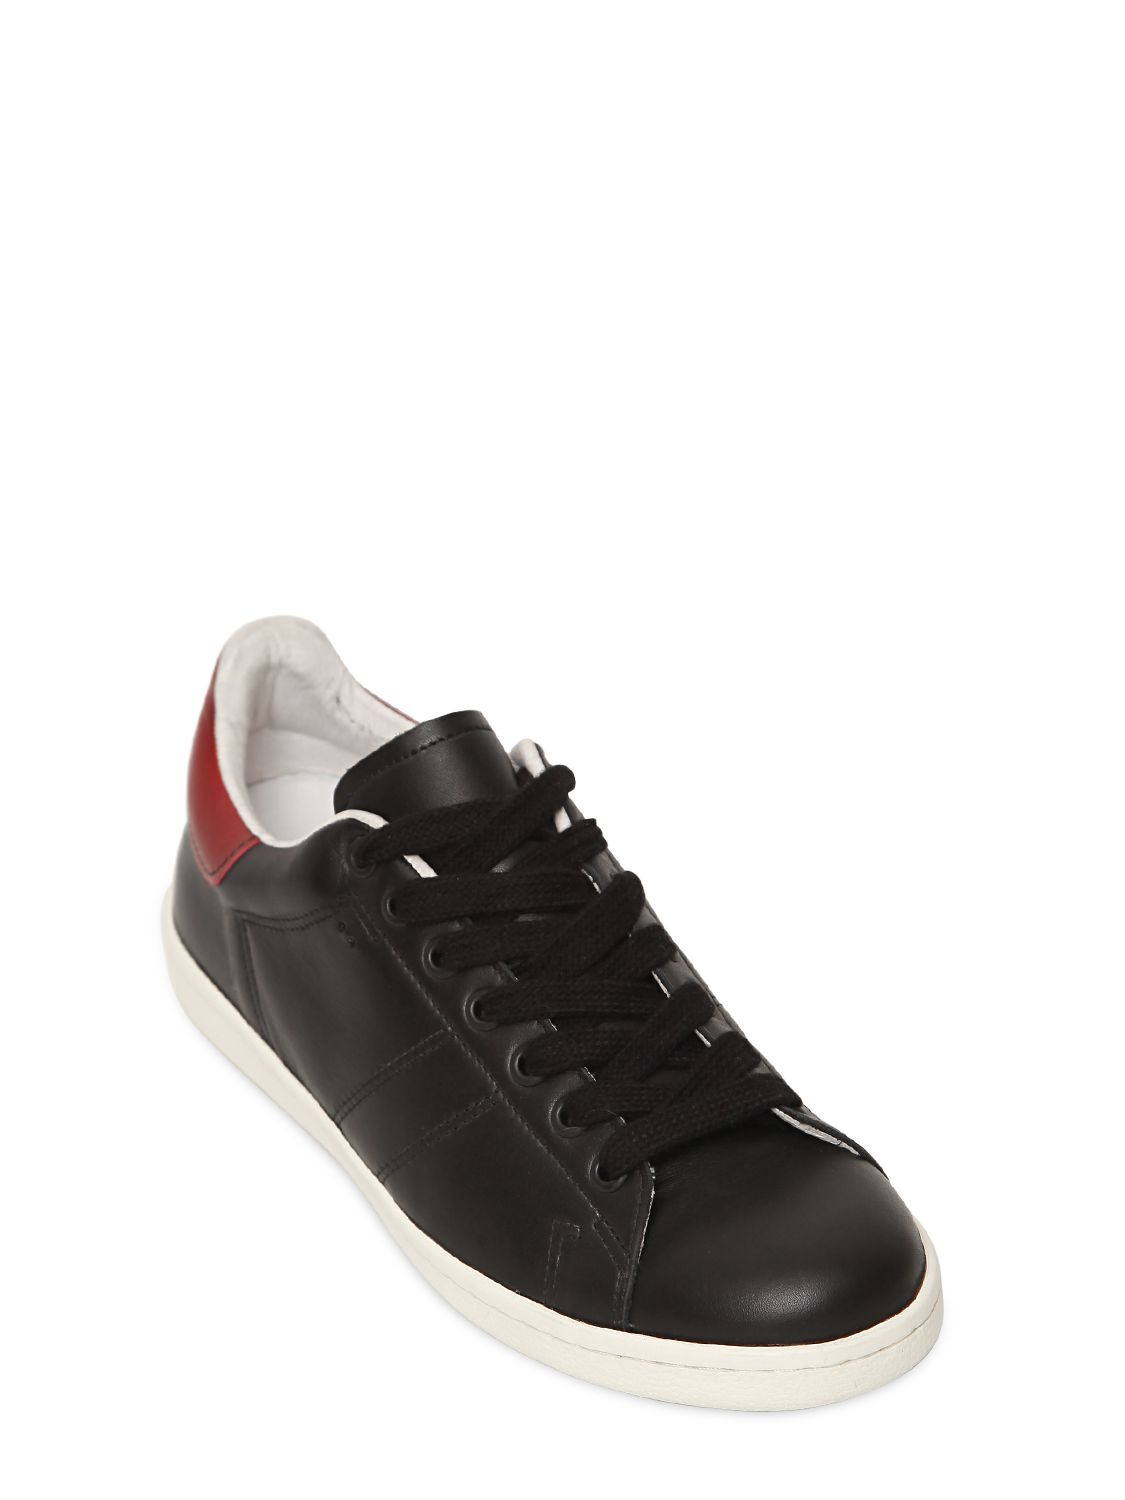 isabel marant bart sneakers in black lyst. Black Bedroom Furniture Sets. Home Design Ideas